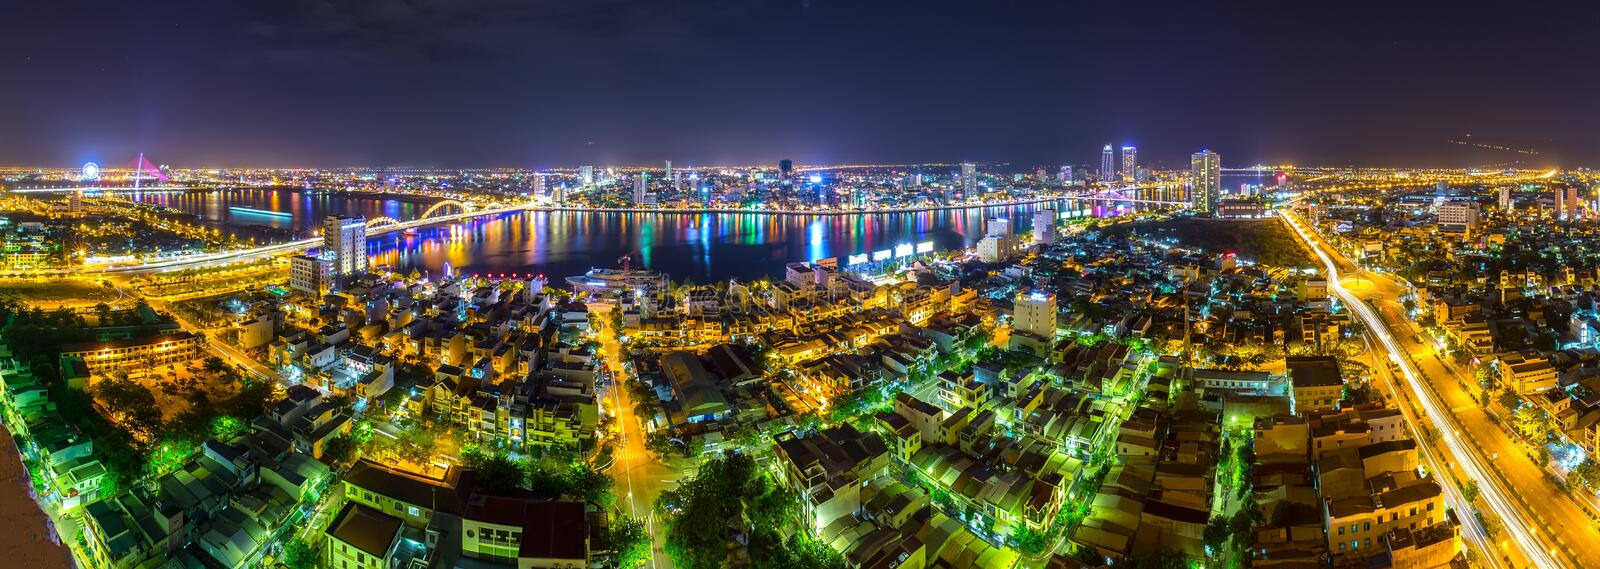 Danang panoramic city nightlife royalty free stock images